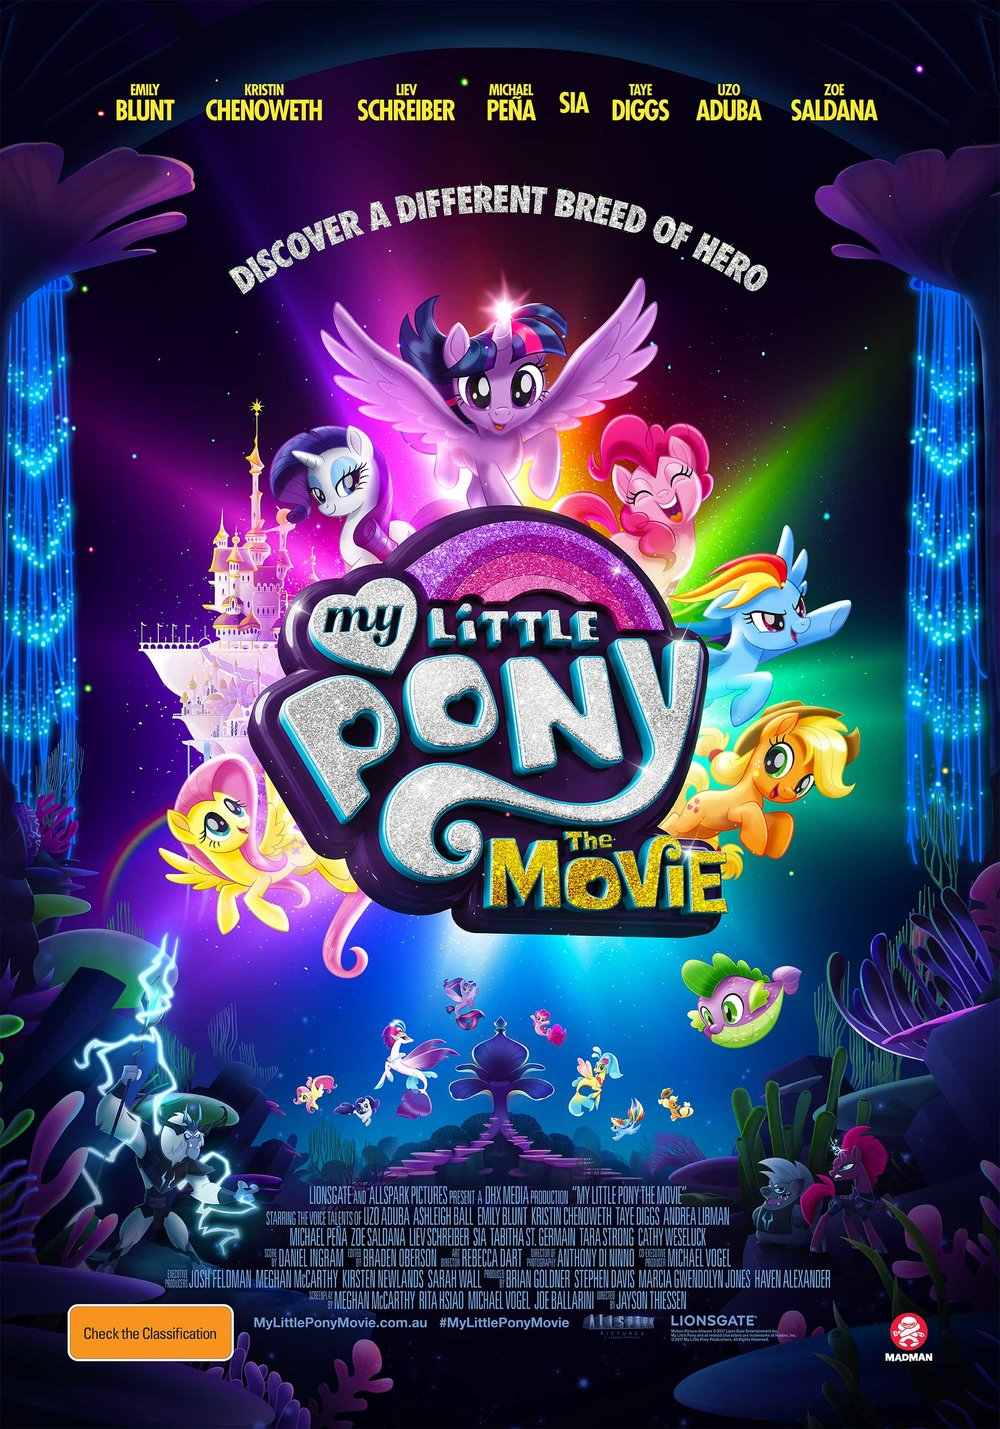 My-Little-Pony-Movie-Little-Rockers-Radio-Giveaway